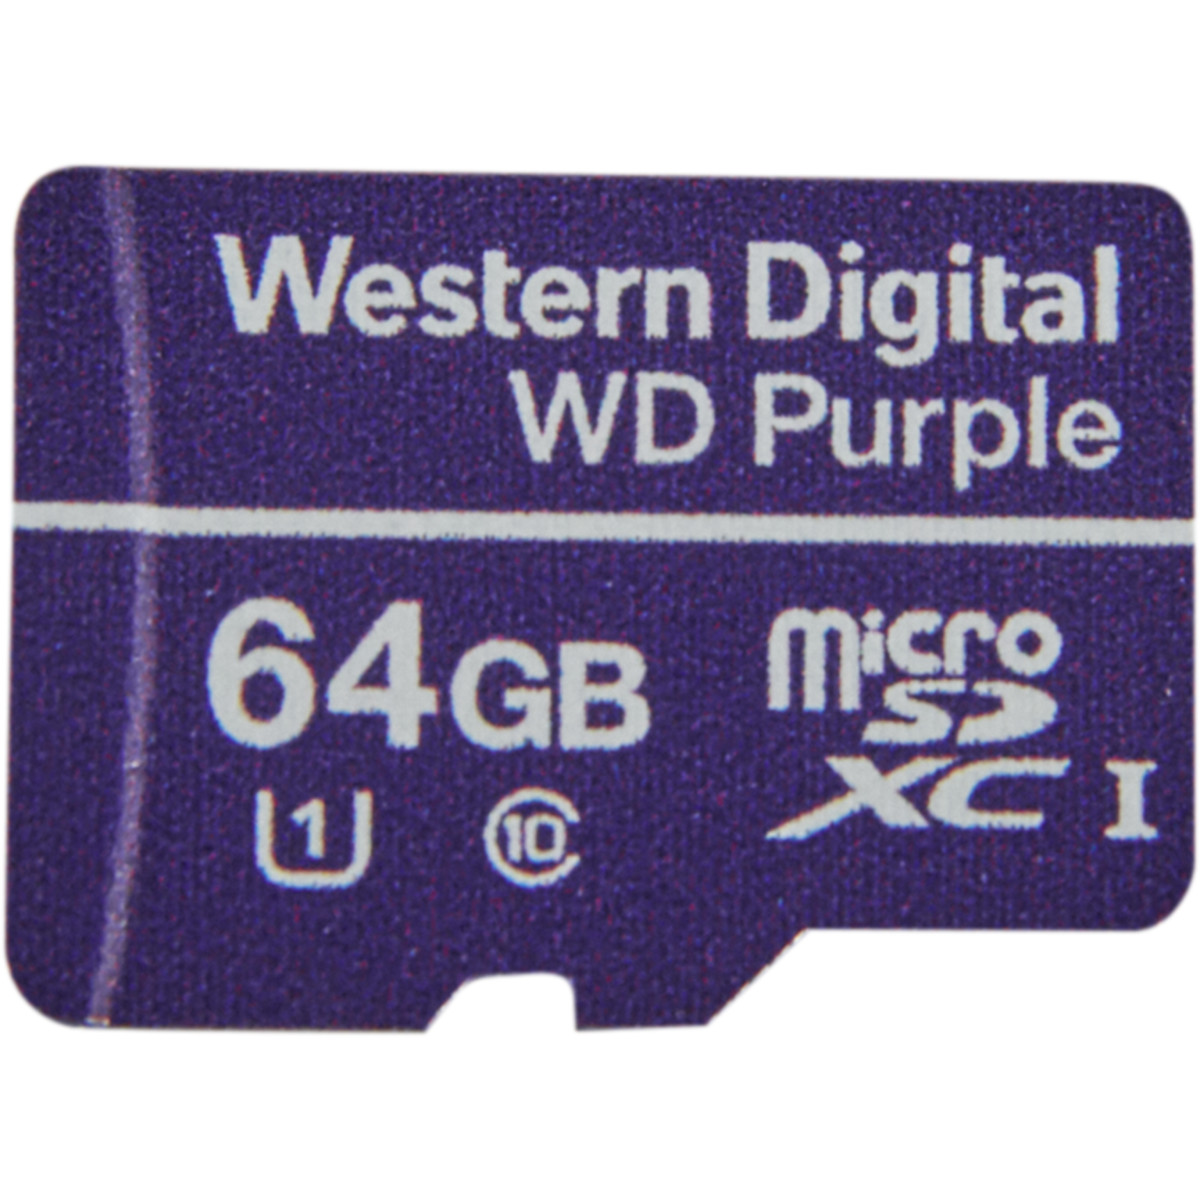 Карта памяти Western Digital Purple 64GB